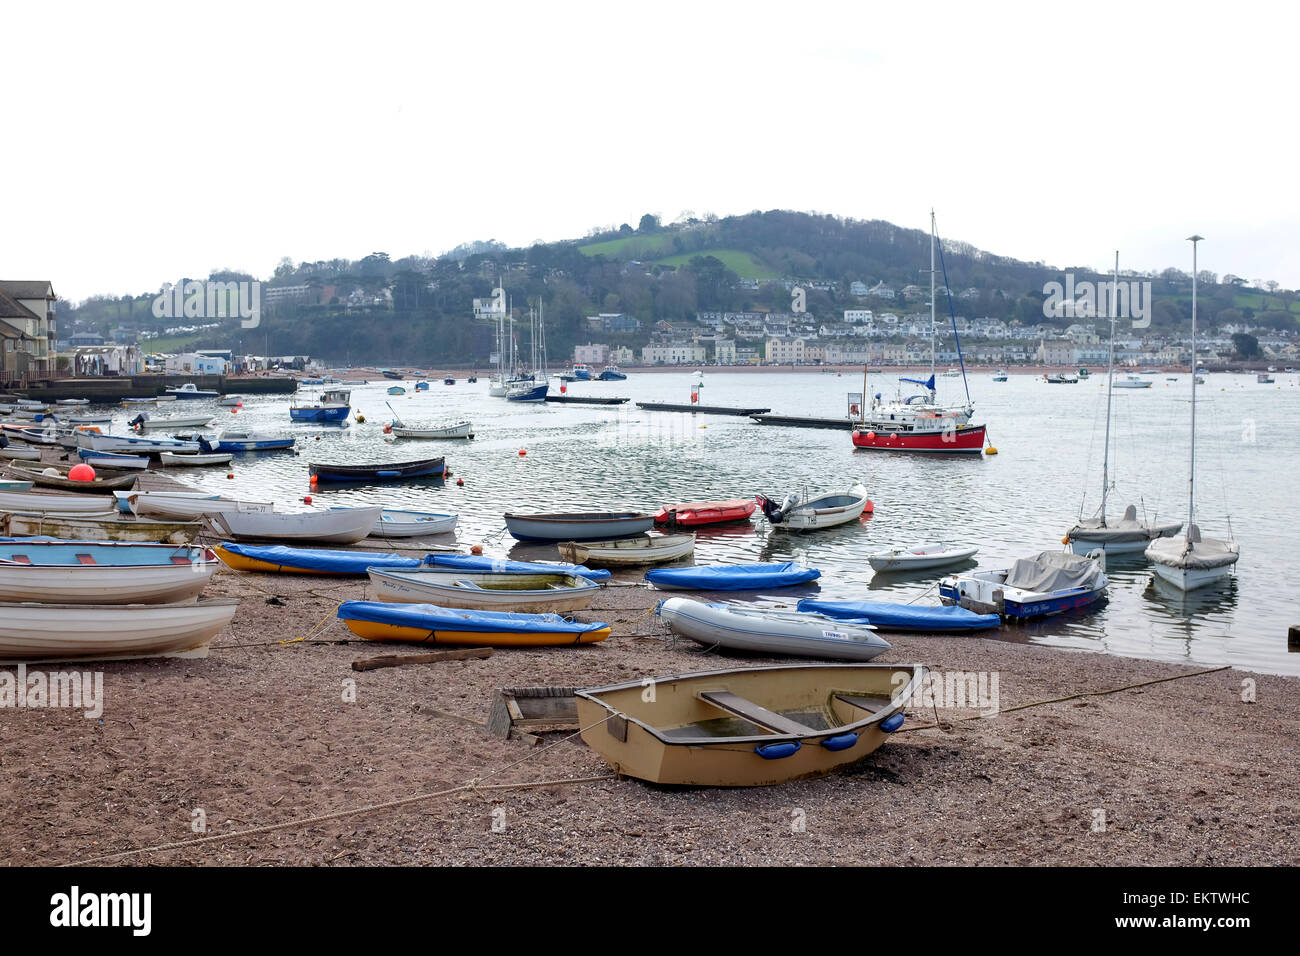 Boats at Teighmouth Quay Devon - Stock Image